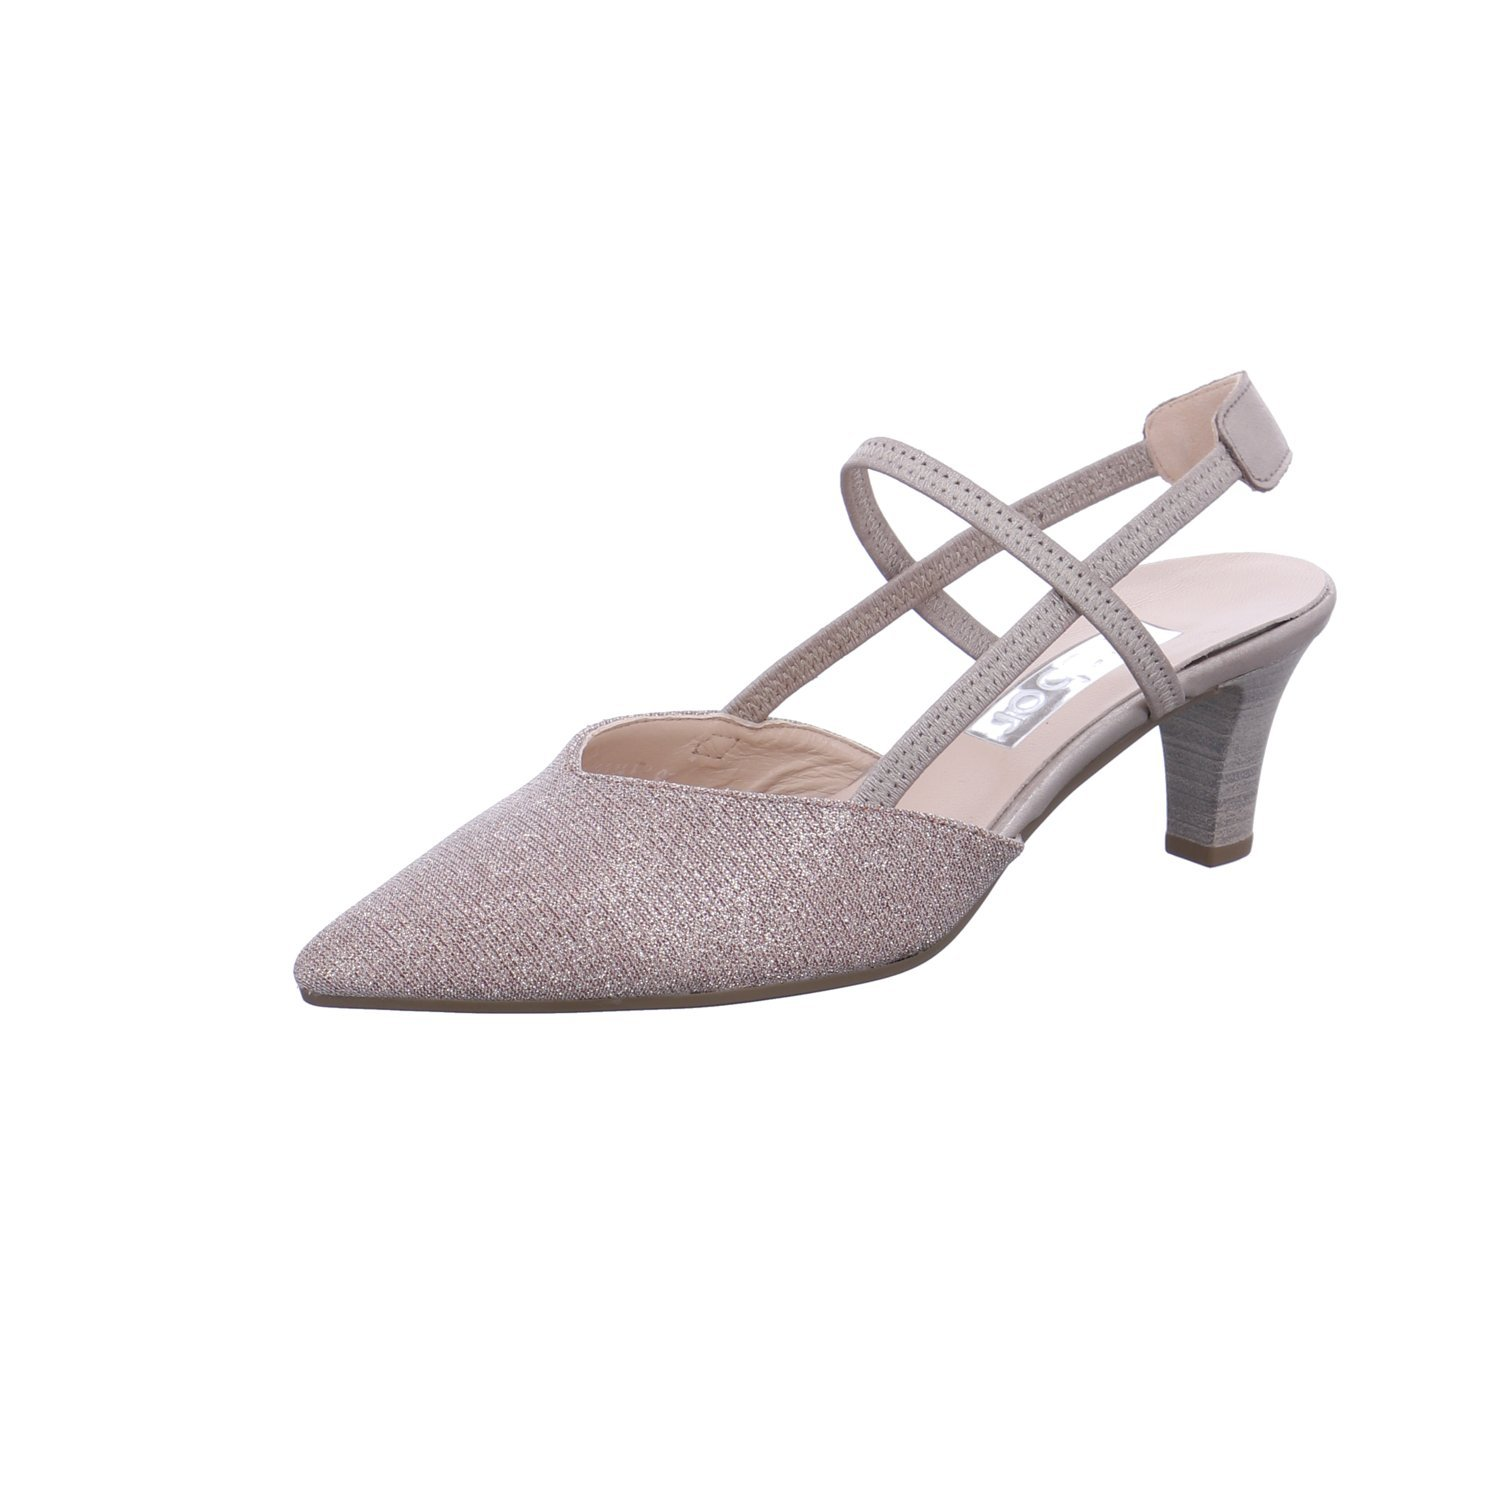 Gabor Damen Pumps 81.554.64 Rosa 472567